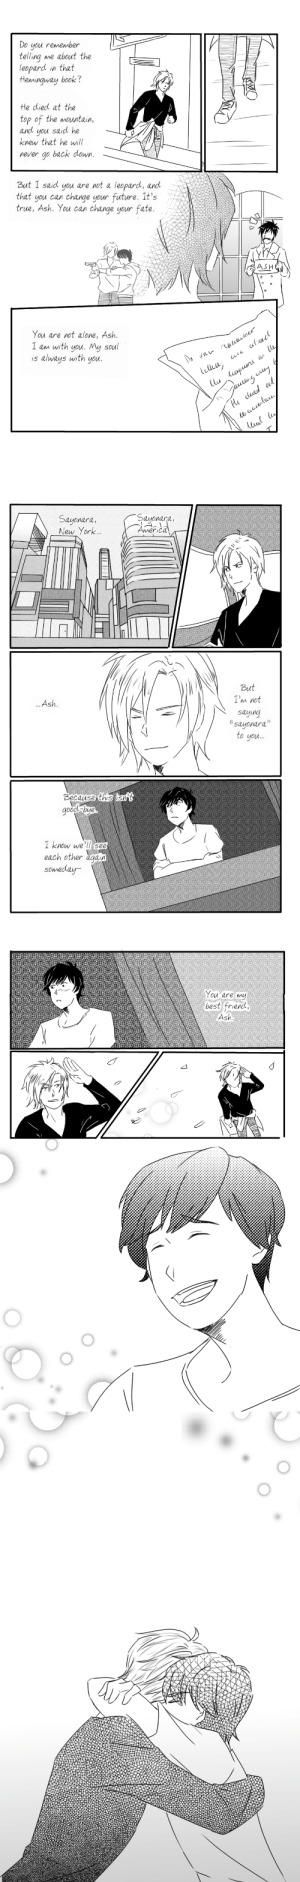 "fantasyeyebrows:  Finished the banana fish manga, wasnt a big fan of the endingso i fixed it :): Do you remember  telling me about the  leopard in that  Hemingway book?  He died at the  top of the mountain,  and you said he  knew that he will  never go back down  But 1 said you are not a leopard, and  that you can change your future. It's  true, Ash. You can change your fate.  ASH  You are not alone, Ash  I am with you. My soul  is always with you.  uo  ru   Sayonara,  Sayonara,  eu YorkAerica  ork...  But  I'm not  Ash  saying  sayonara""  to you...  because thiS i5nat  odbye  I know we'll see  each other agaip  someday   You are my  best friend  Ash fantasyeyebrows:  Finished the banana fish manga, wasnt a big fan of the endingso i fixed it :)"